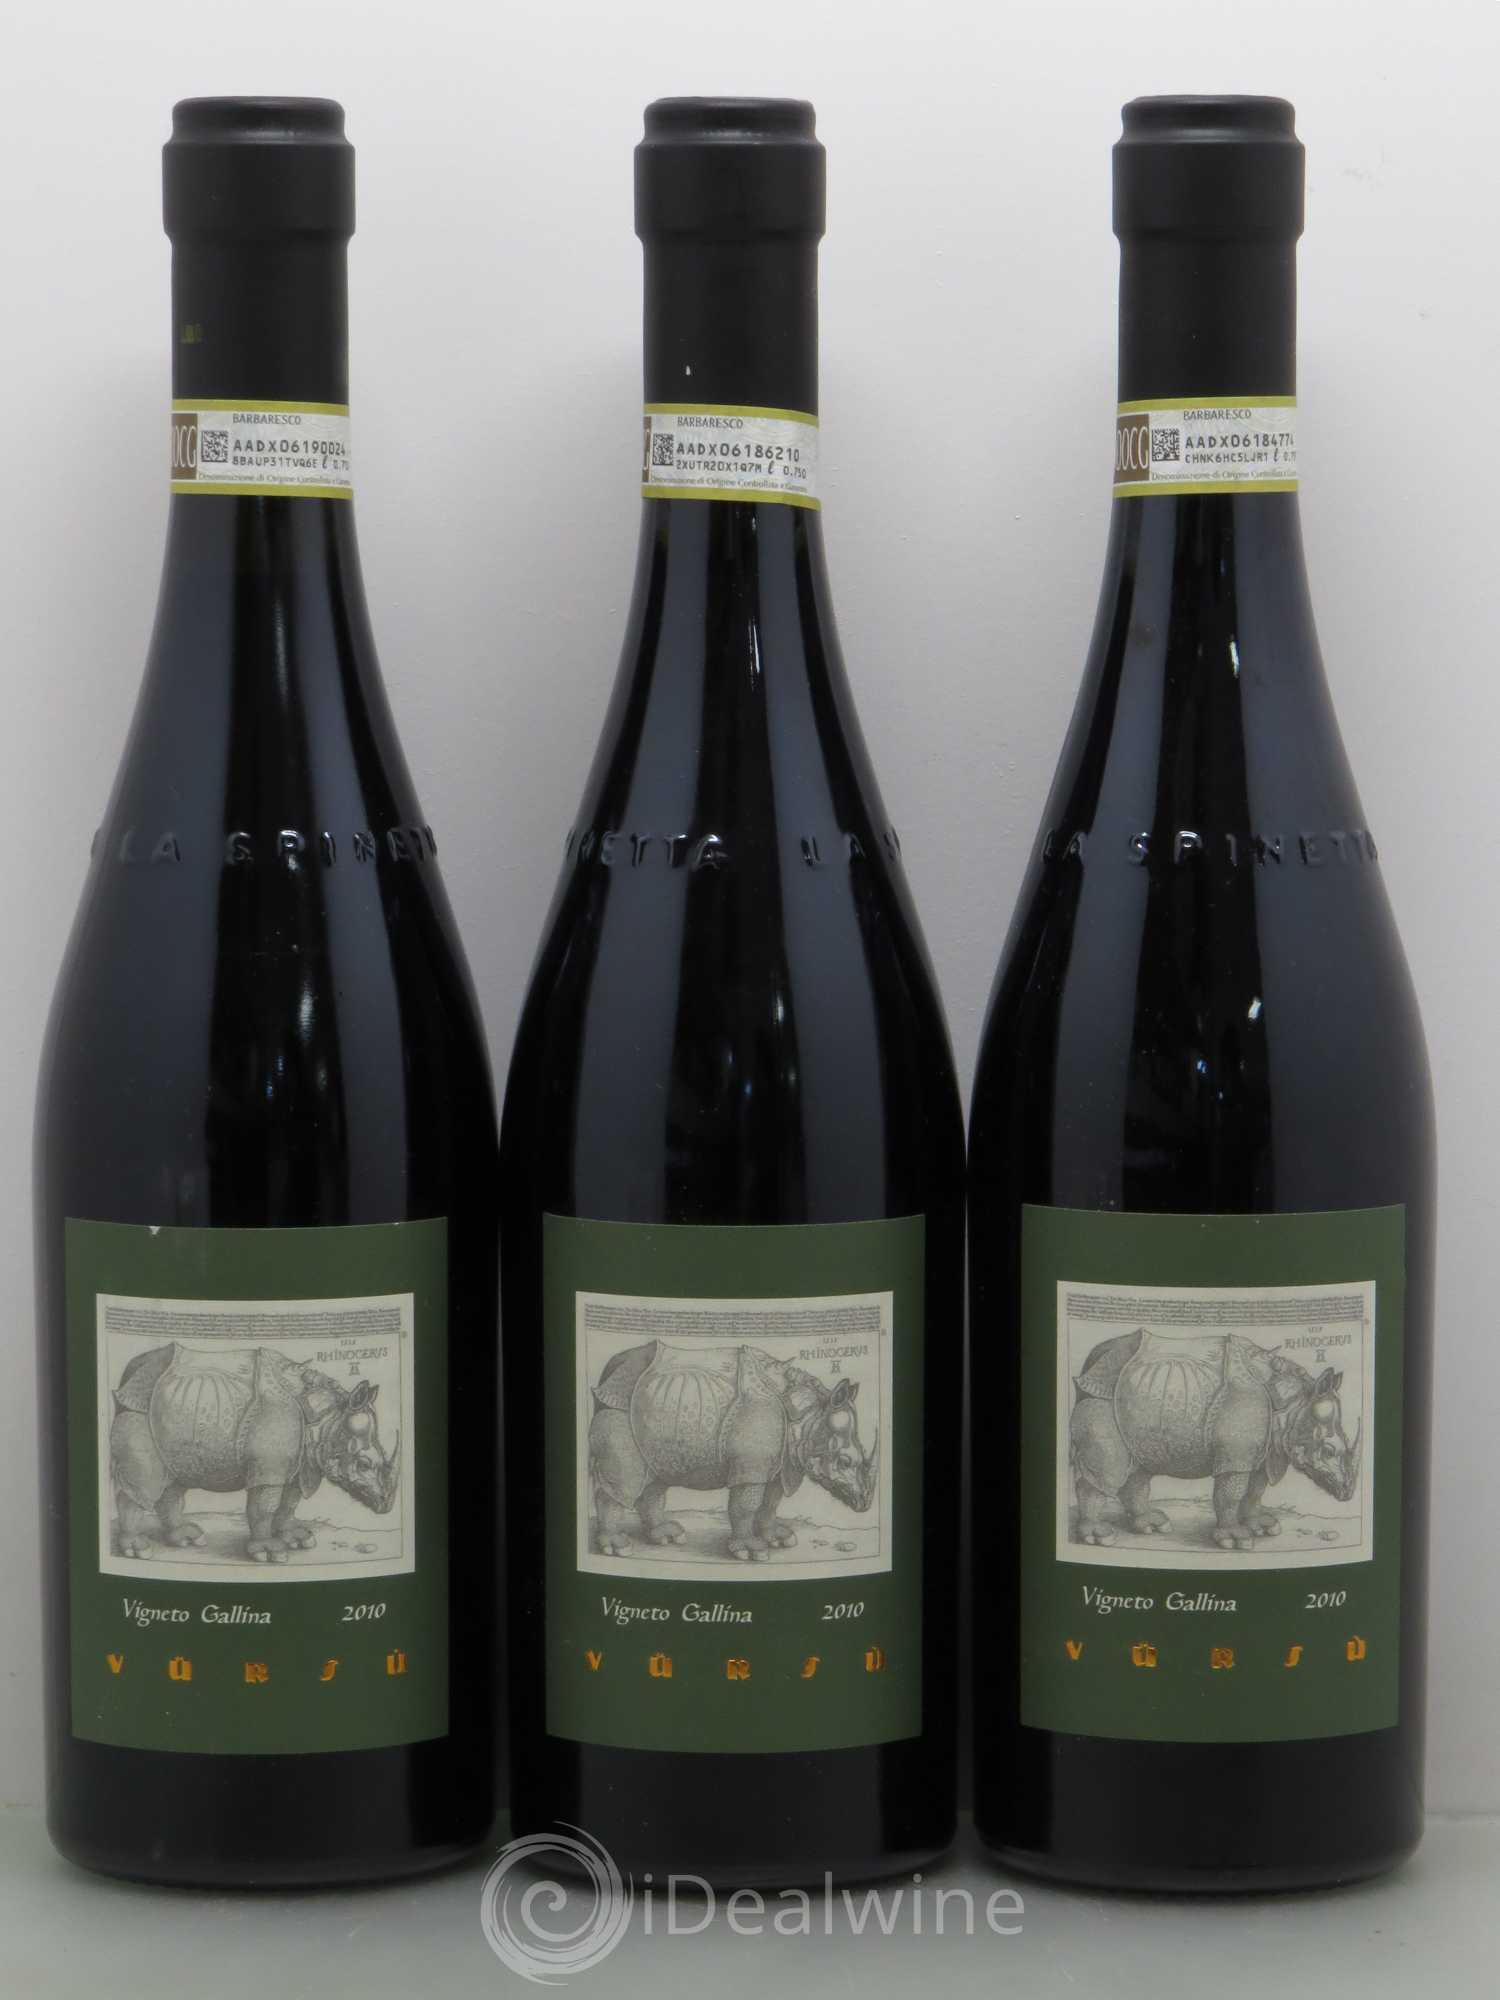 Barbaresco DOCG Vigneto Gallina 2010 - Lot de 3 Bouteilles